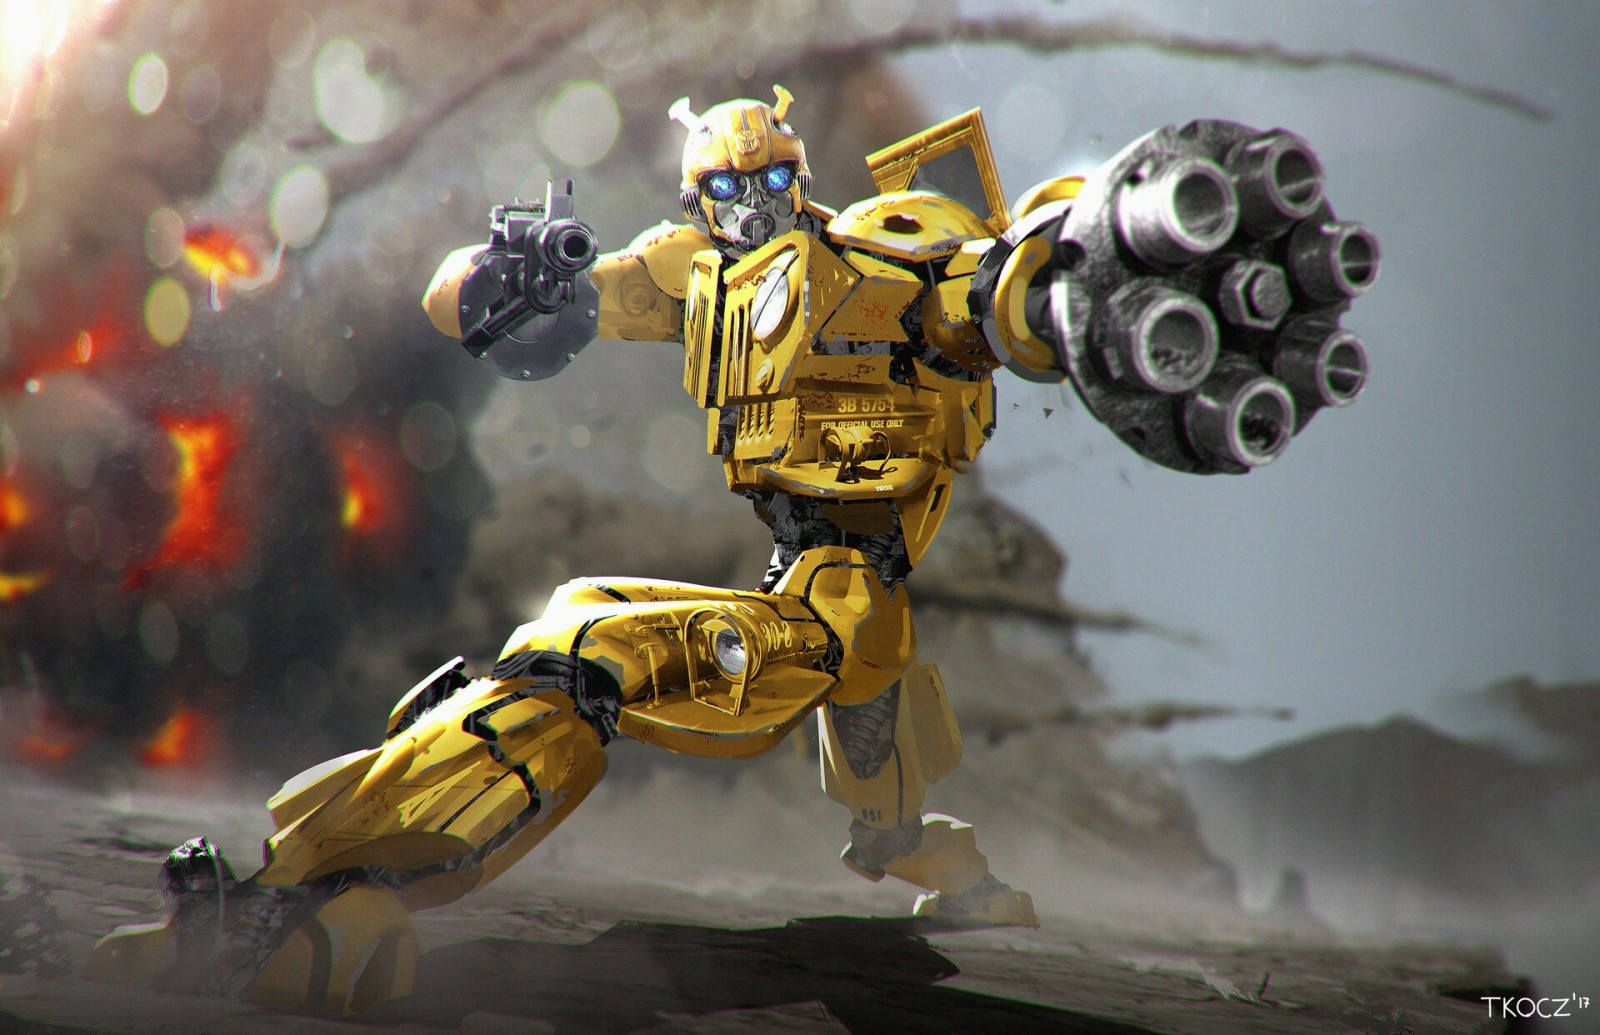 Transformers News: Bumblebee film concept art by Matt Tkocz, video on the sound production, VW Beetle on display